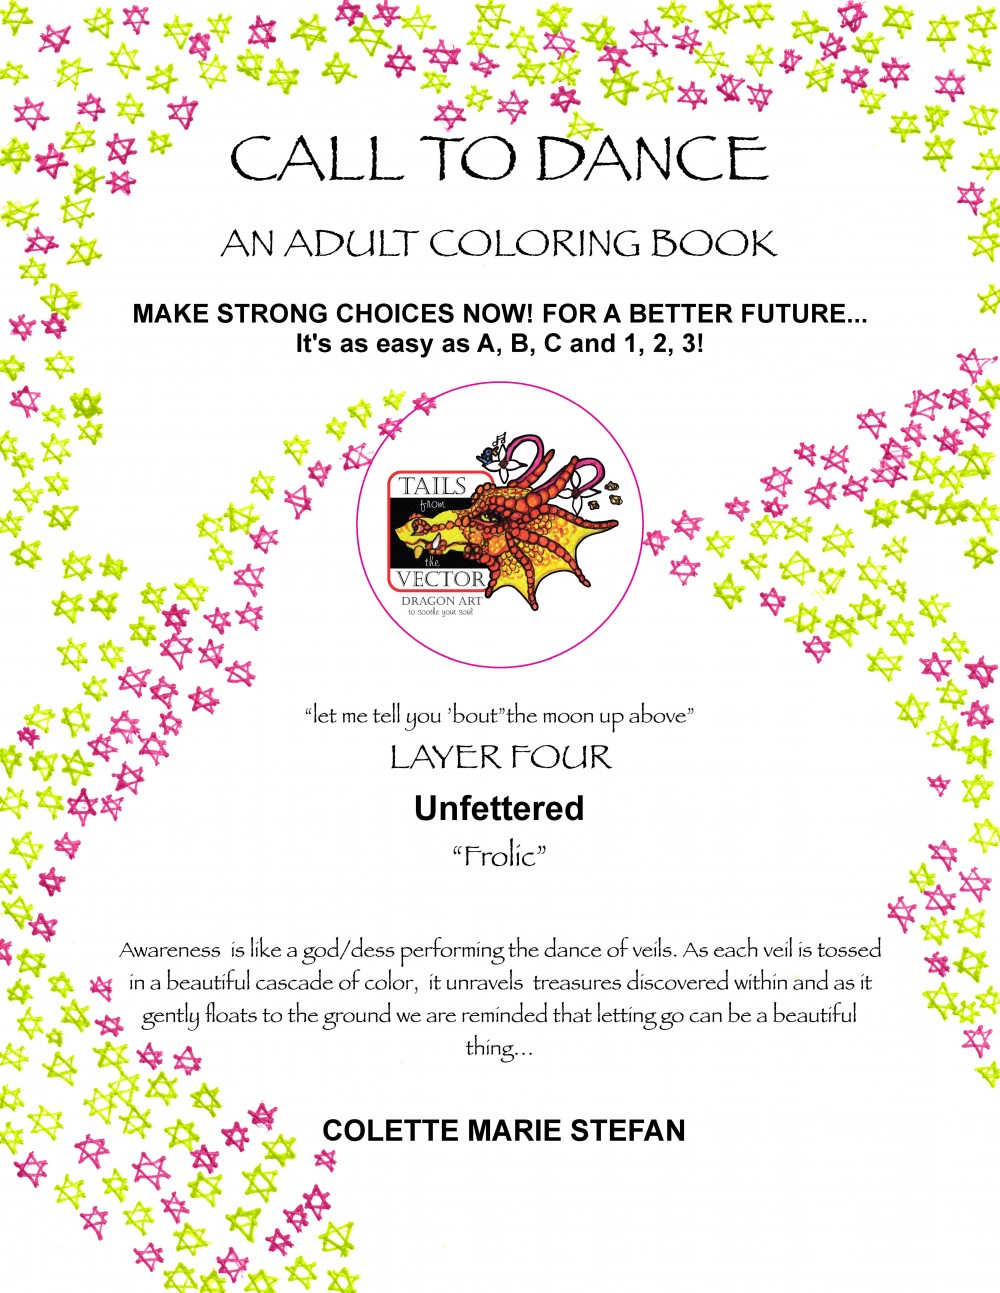 Call to Dance Live Events